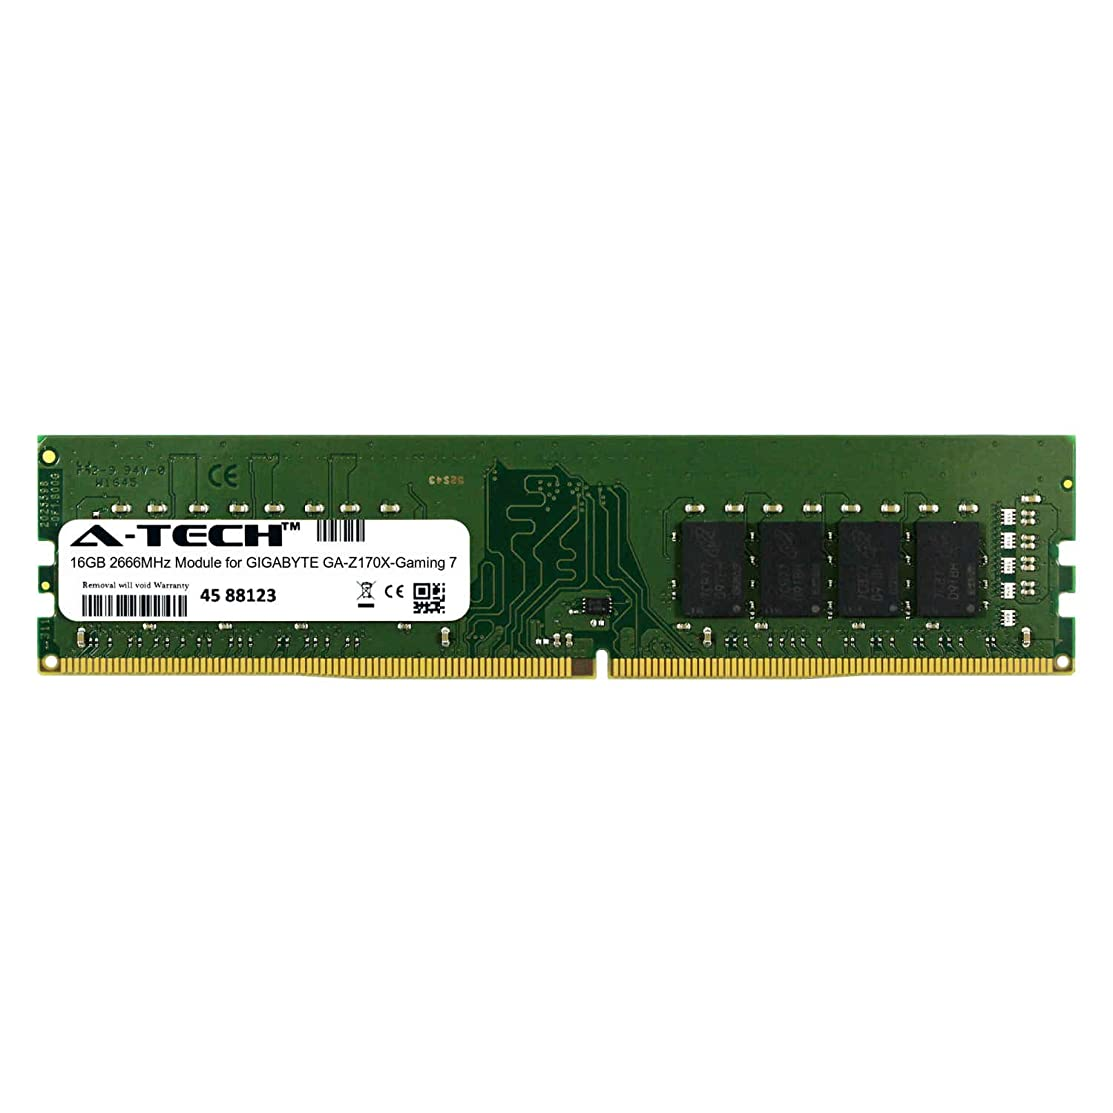 A-Tech 16GB Module for GIGABYTE GA-Z170X-Gaming 7 Desktop & Workstation Motherboard Compatible DDR4 2666Mhz Memory Ram (ATMS385429A25823X1)